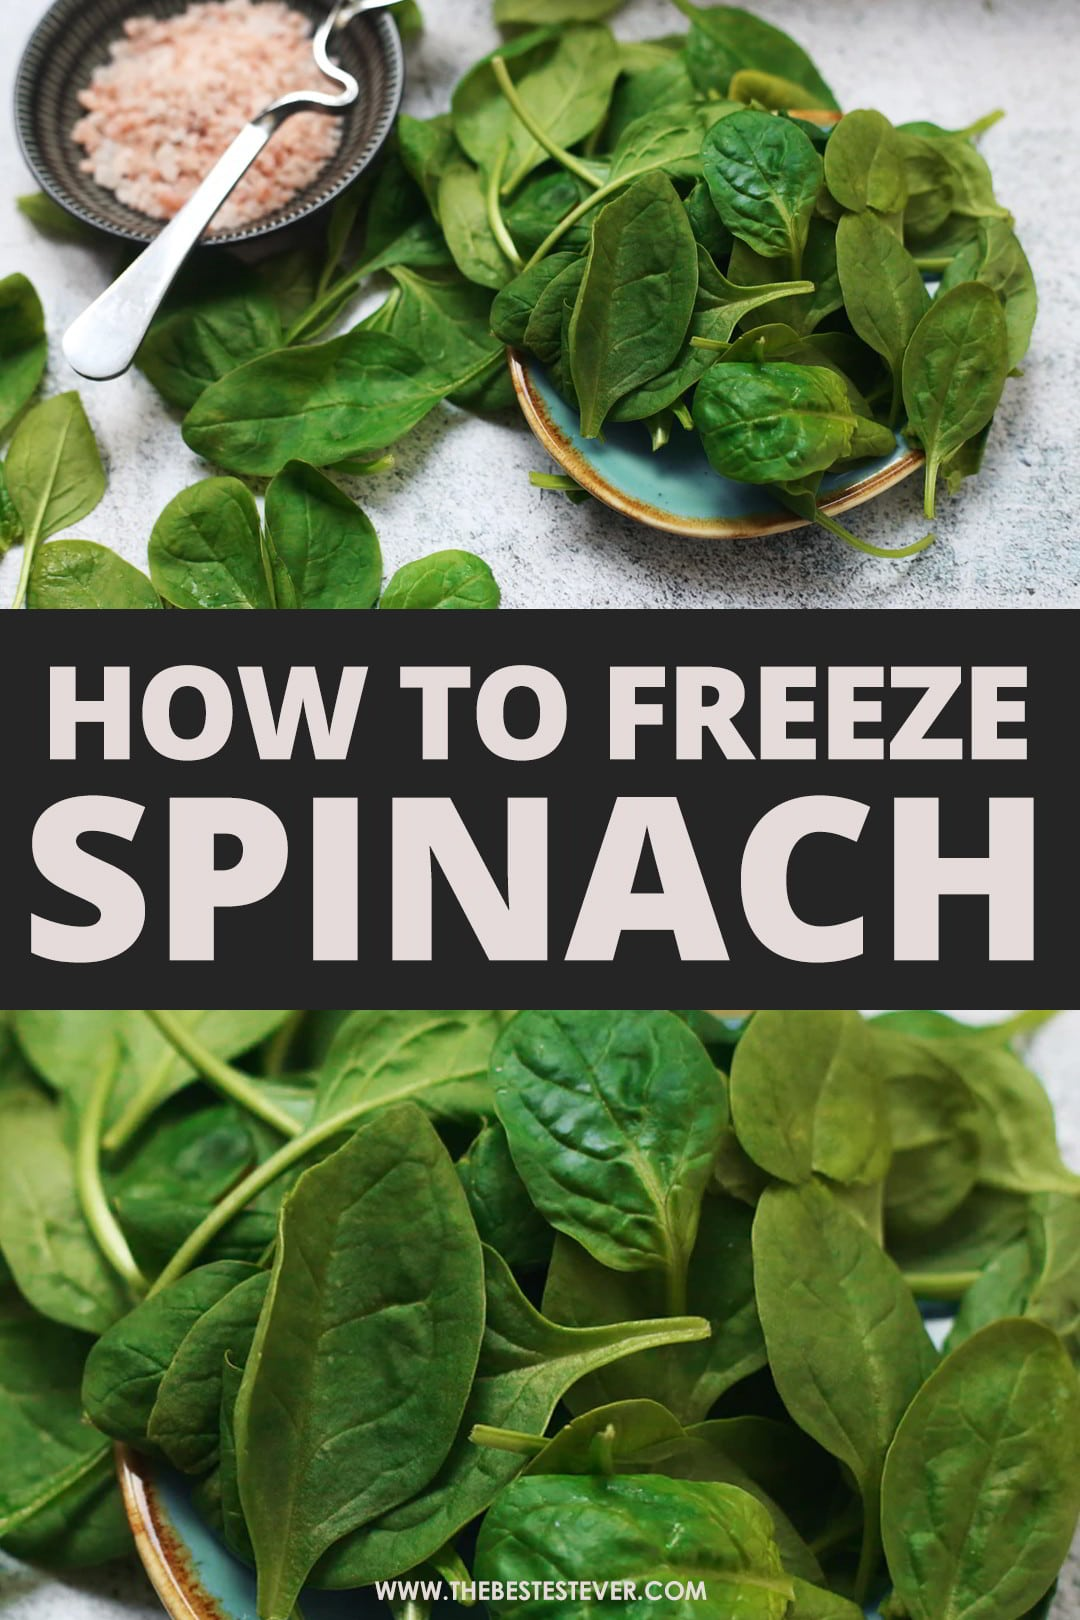 How to Freeze Spinach: a Step-by-Step Guide